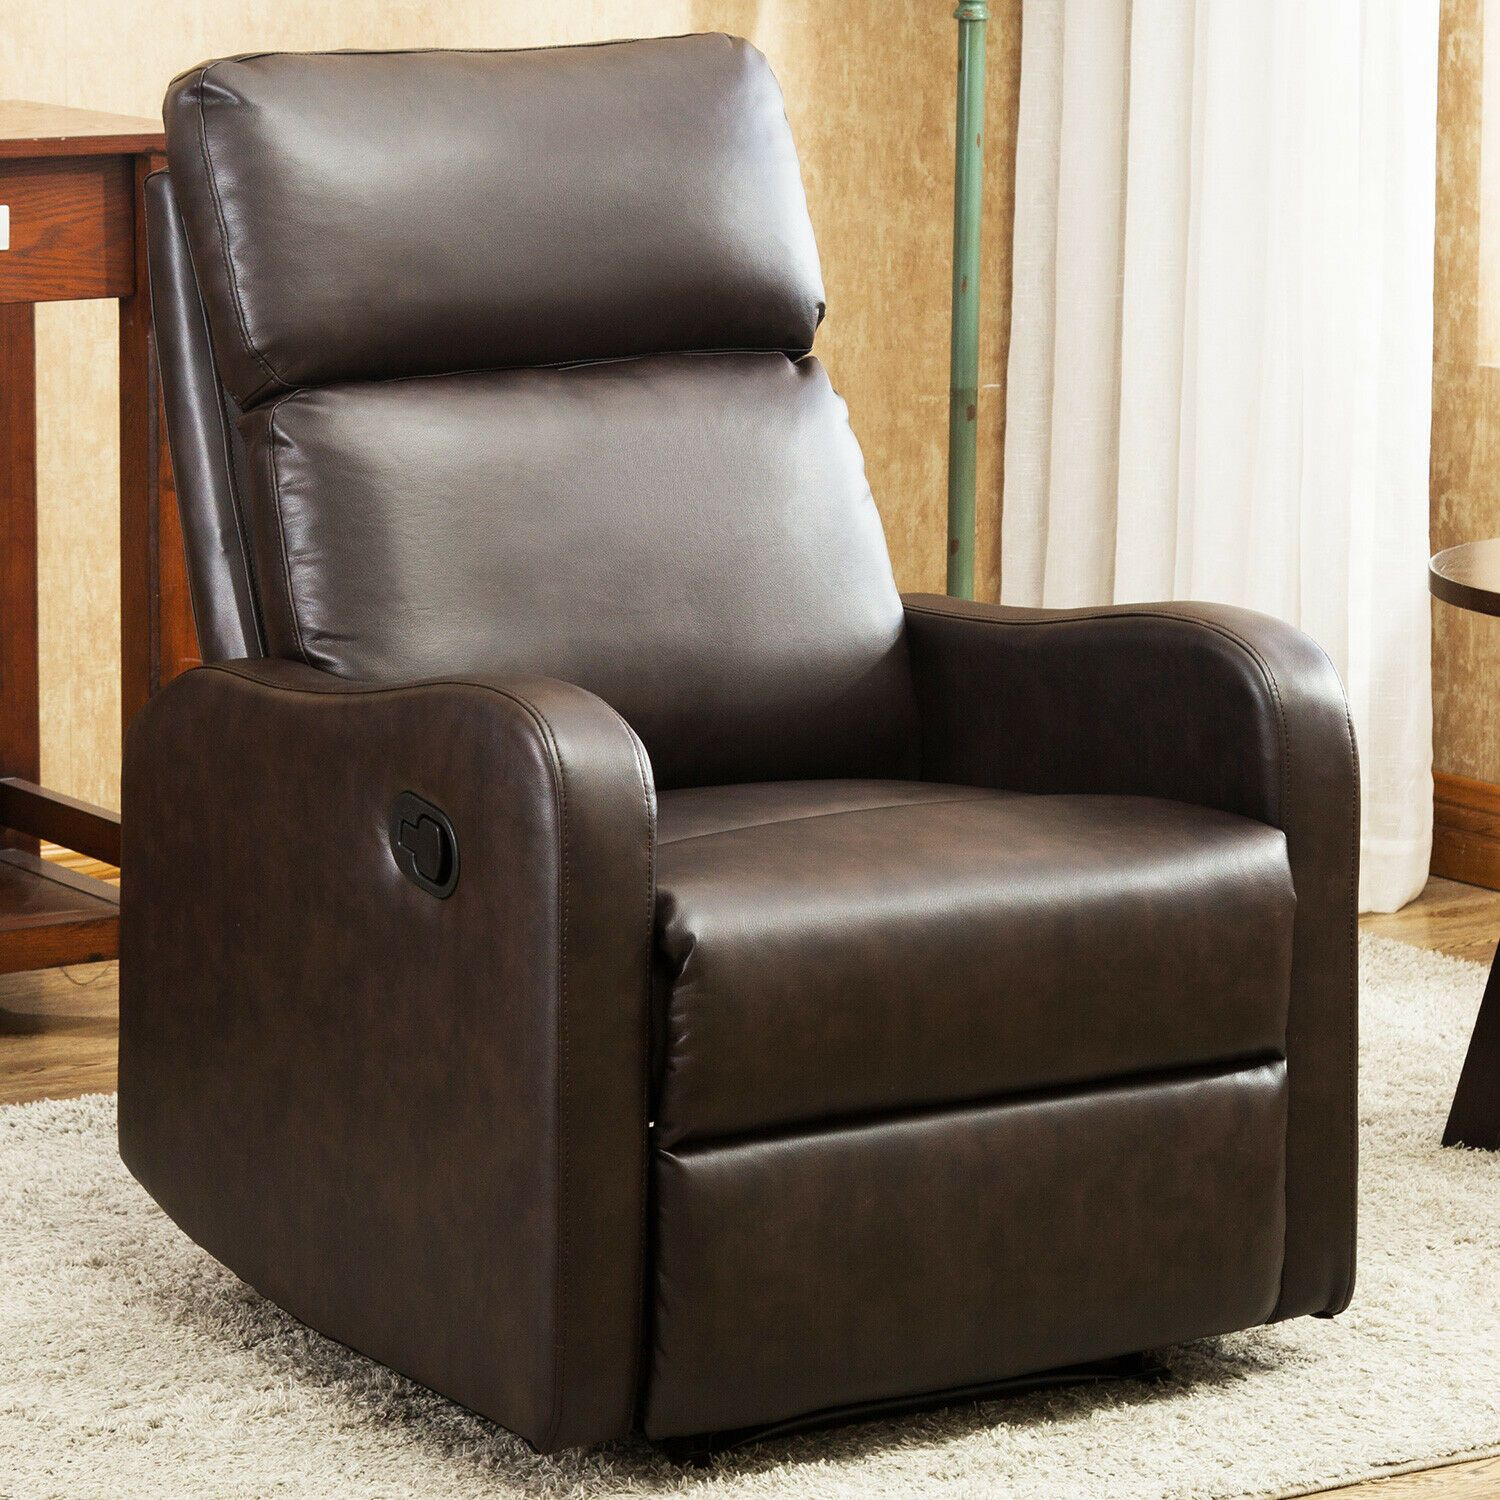 Recliner Sofa Armrest Chair Lazy Living Boy Room Reclining